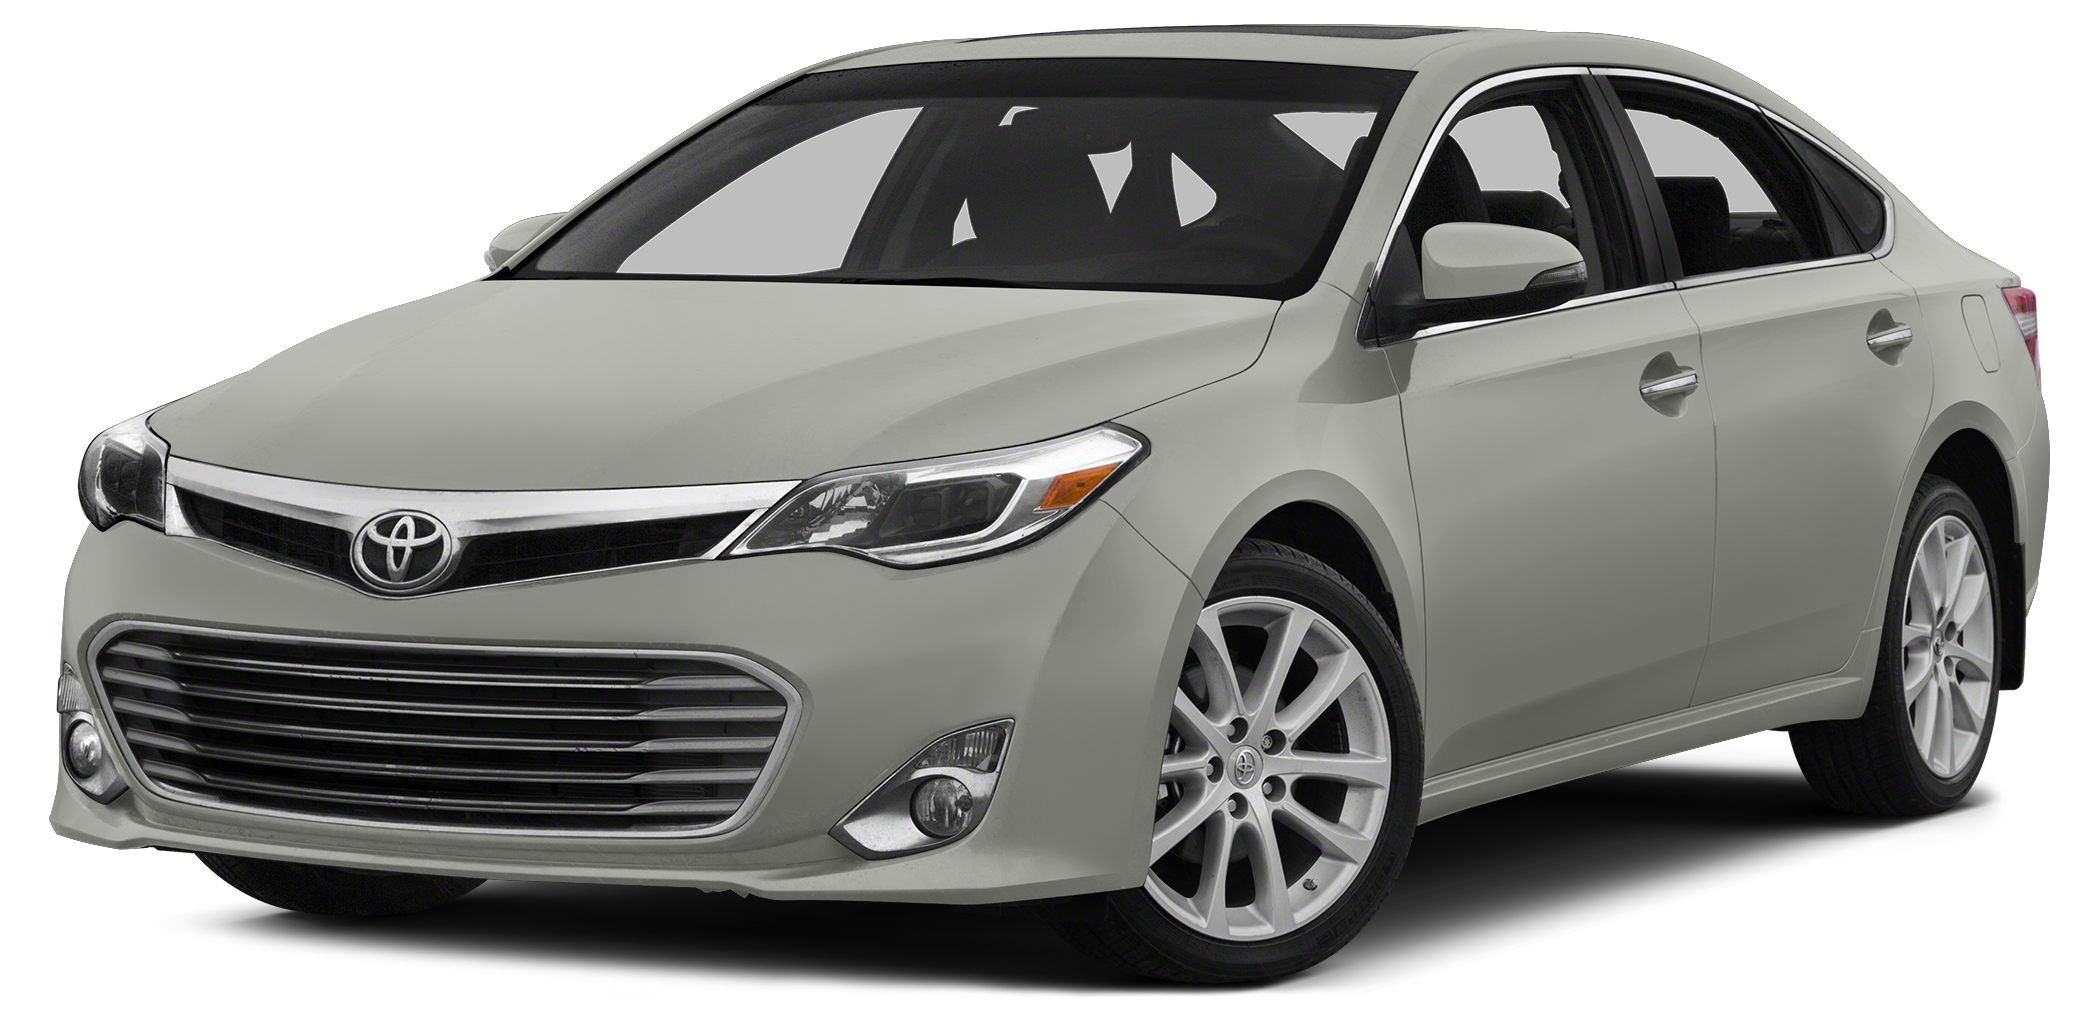 2015 Toyota Avalon Limited Outstanding design defines the 2015 Toyota Avalon Both practical and s